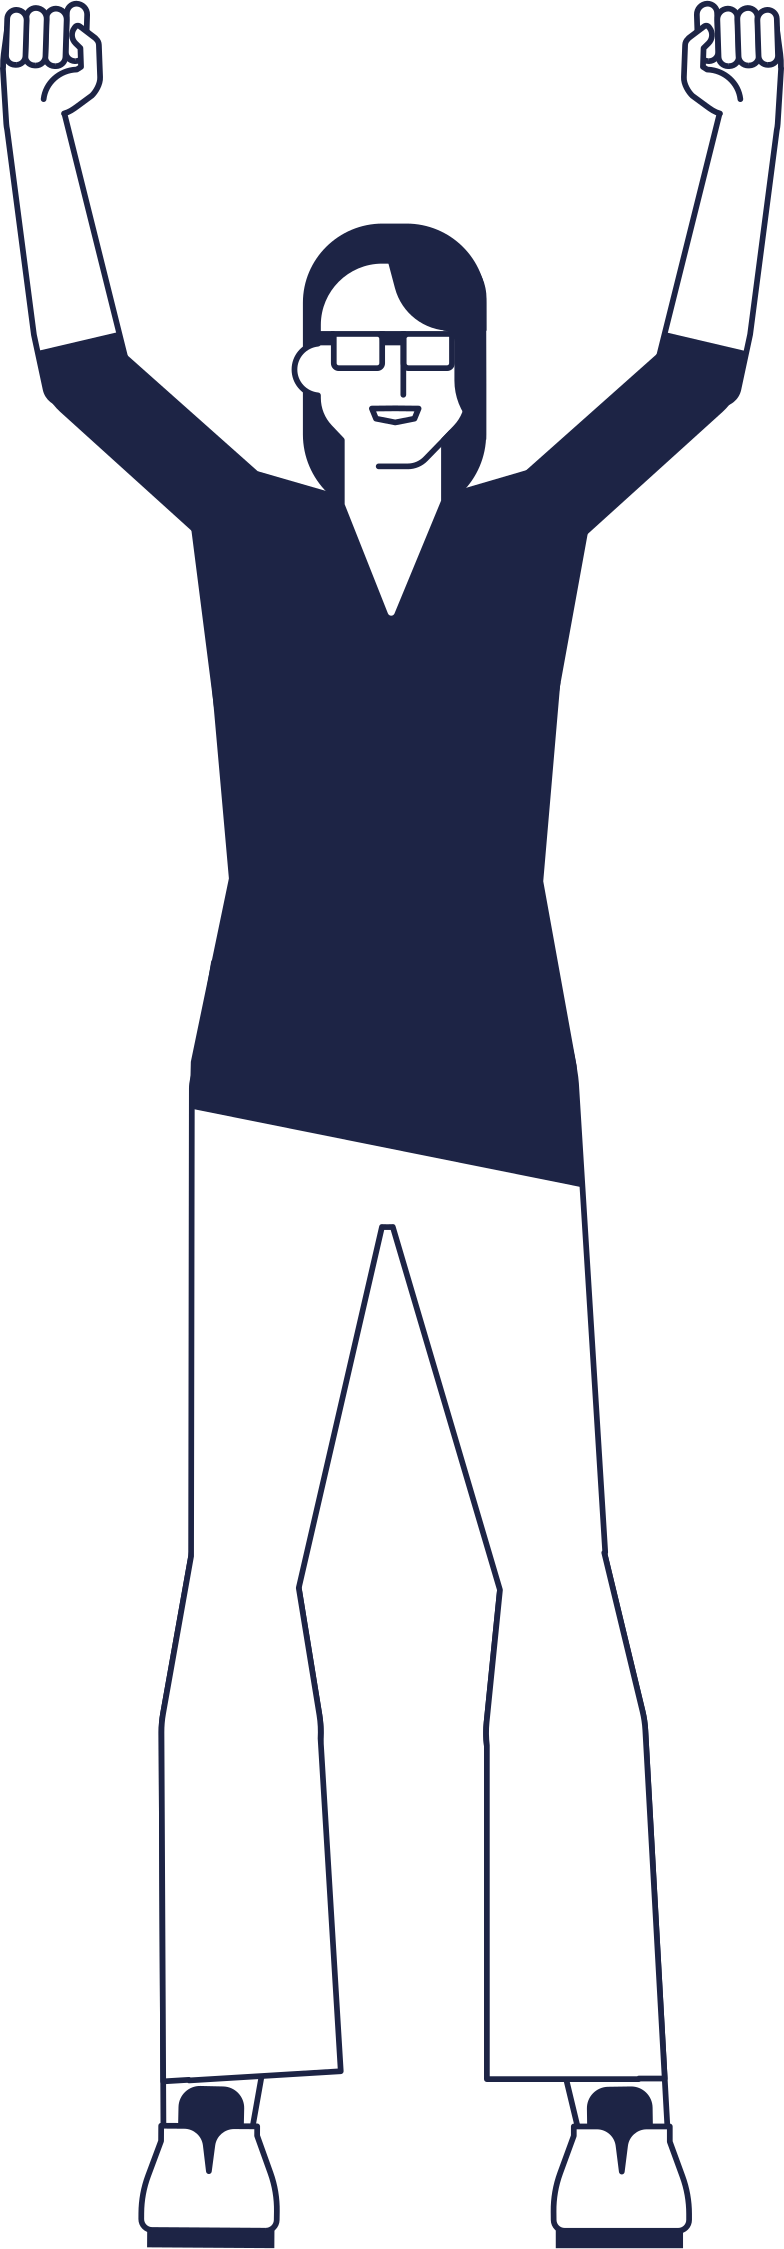 style woman with hands up Vector images in PNG and SVG | Icons8 Illustrations